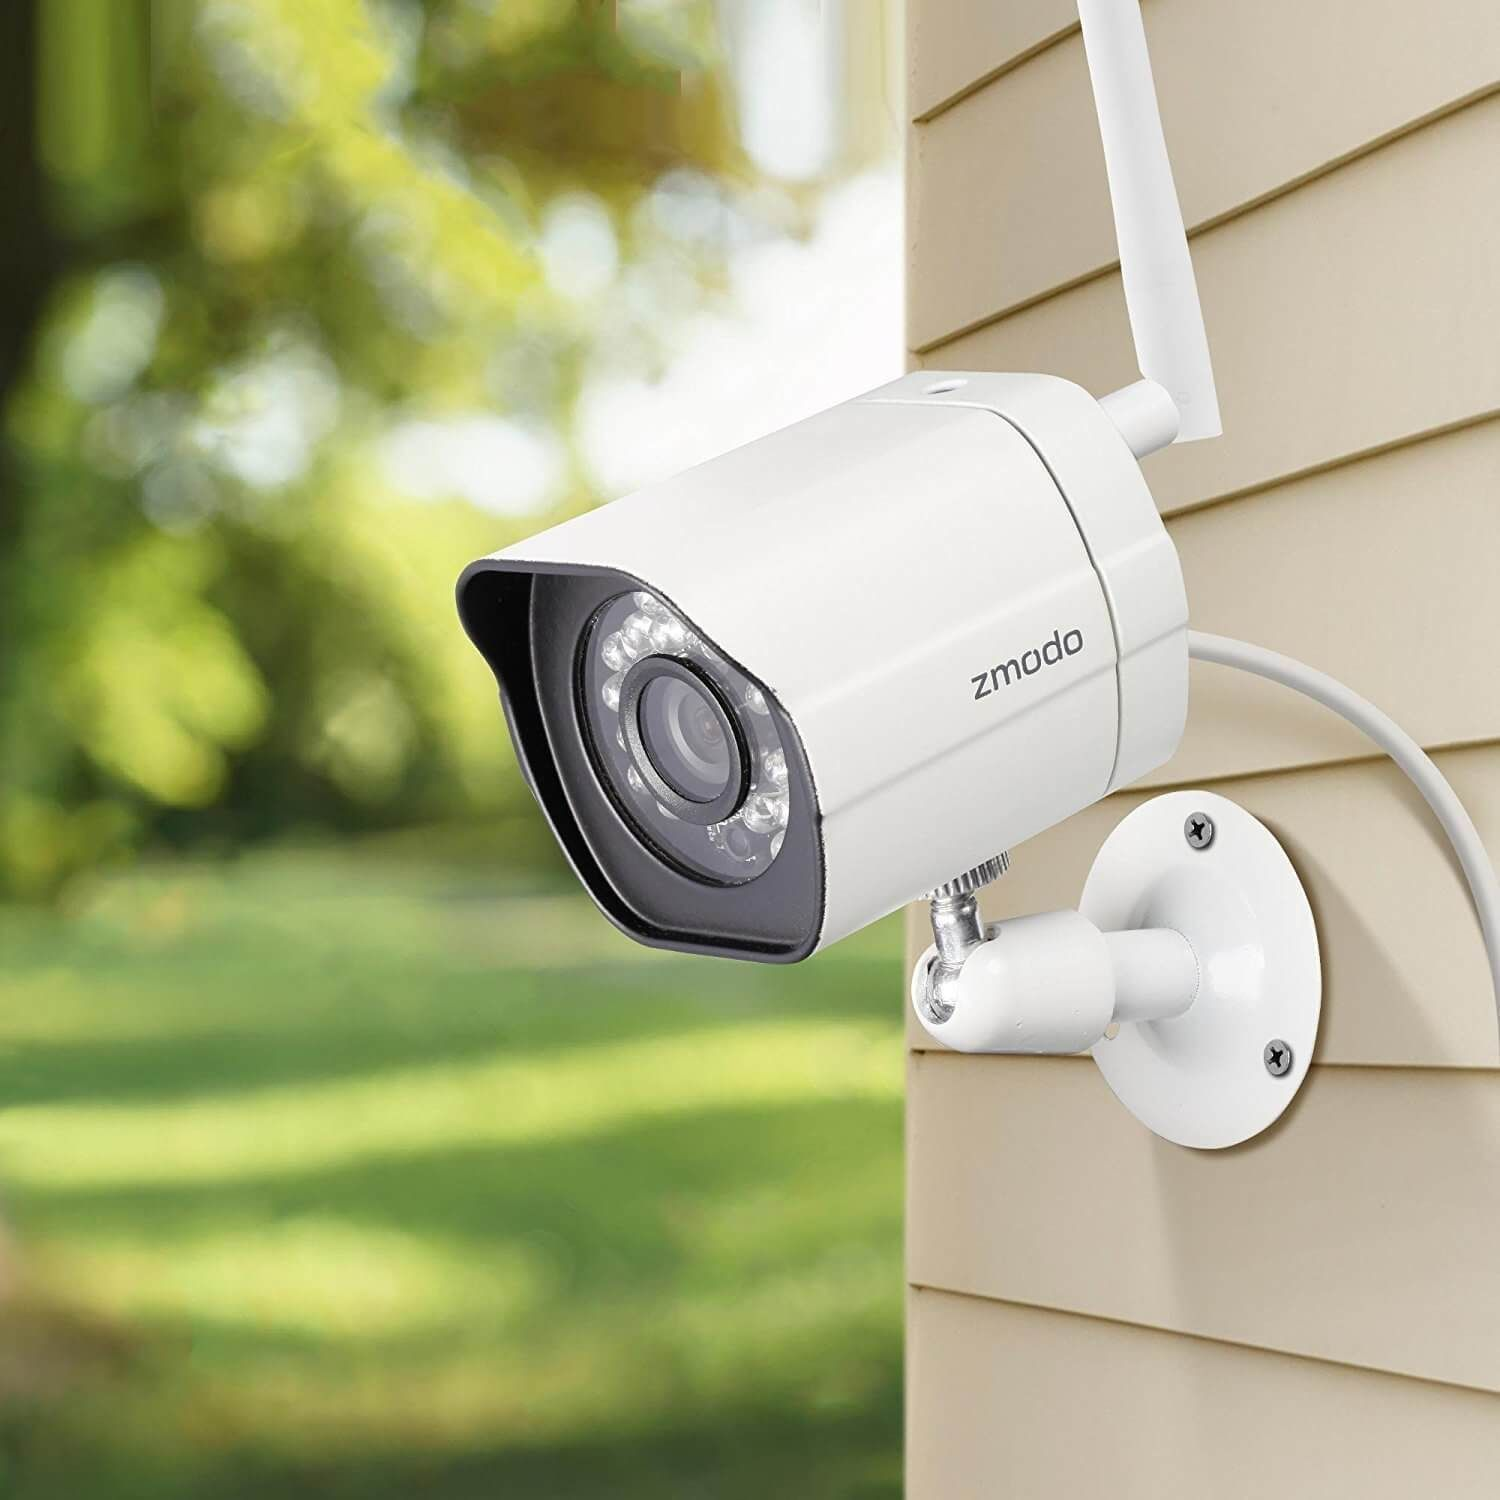 Home Security Cameras are great to discourage burglars